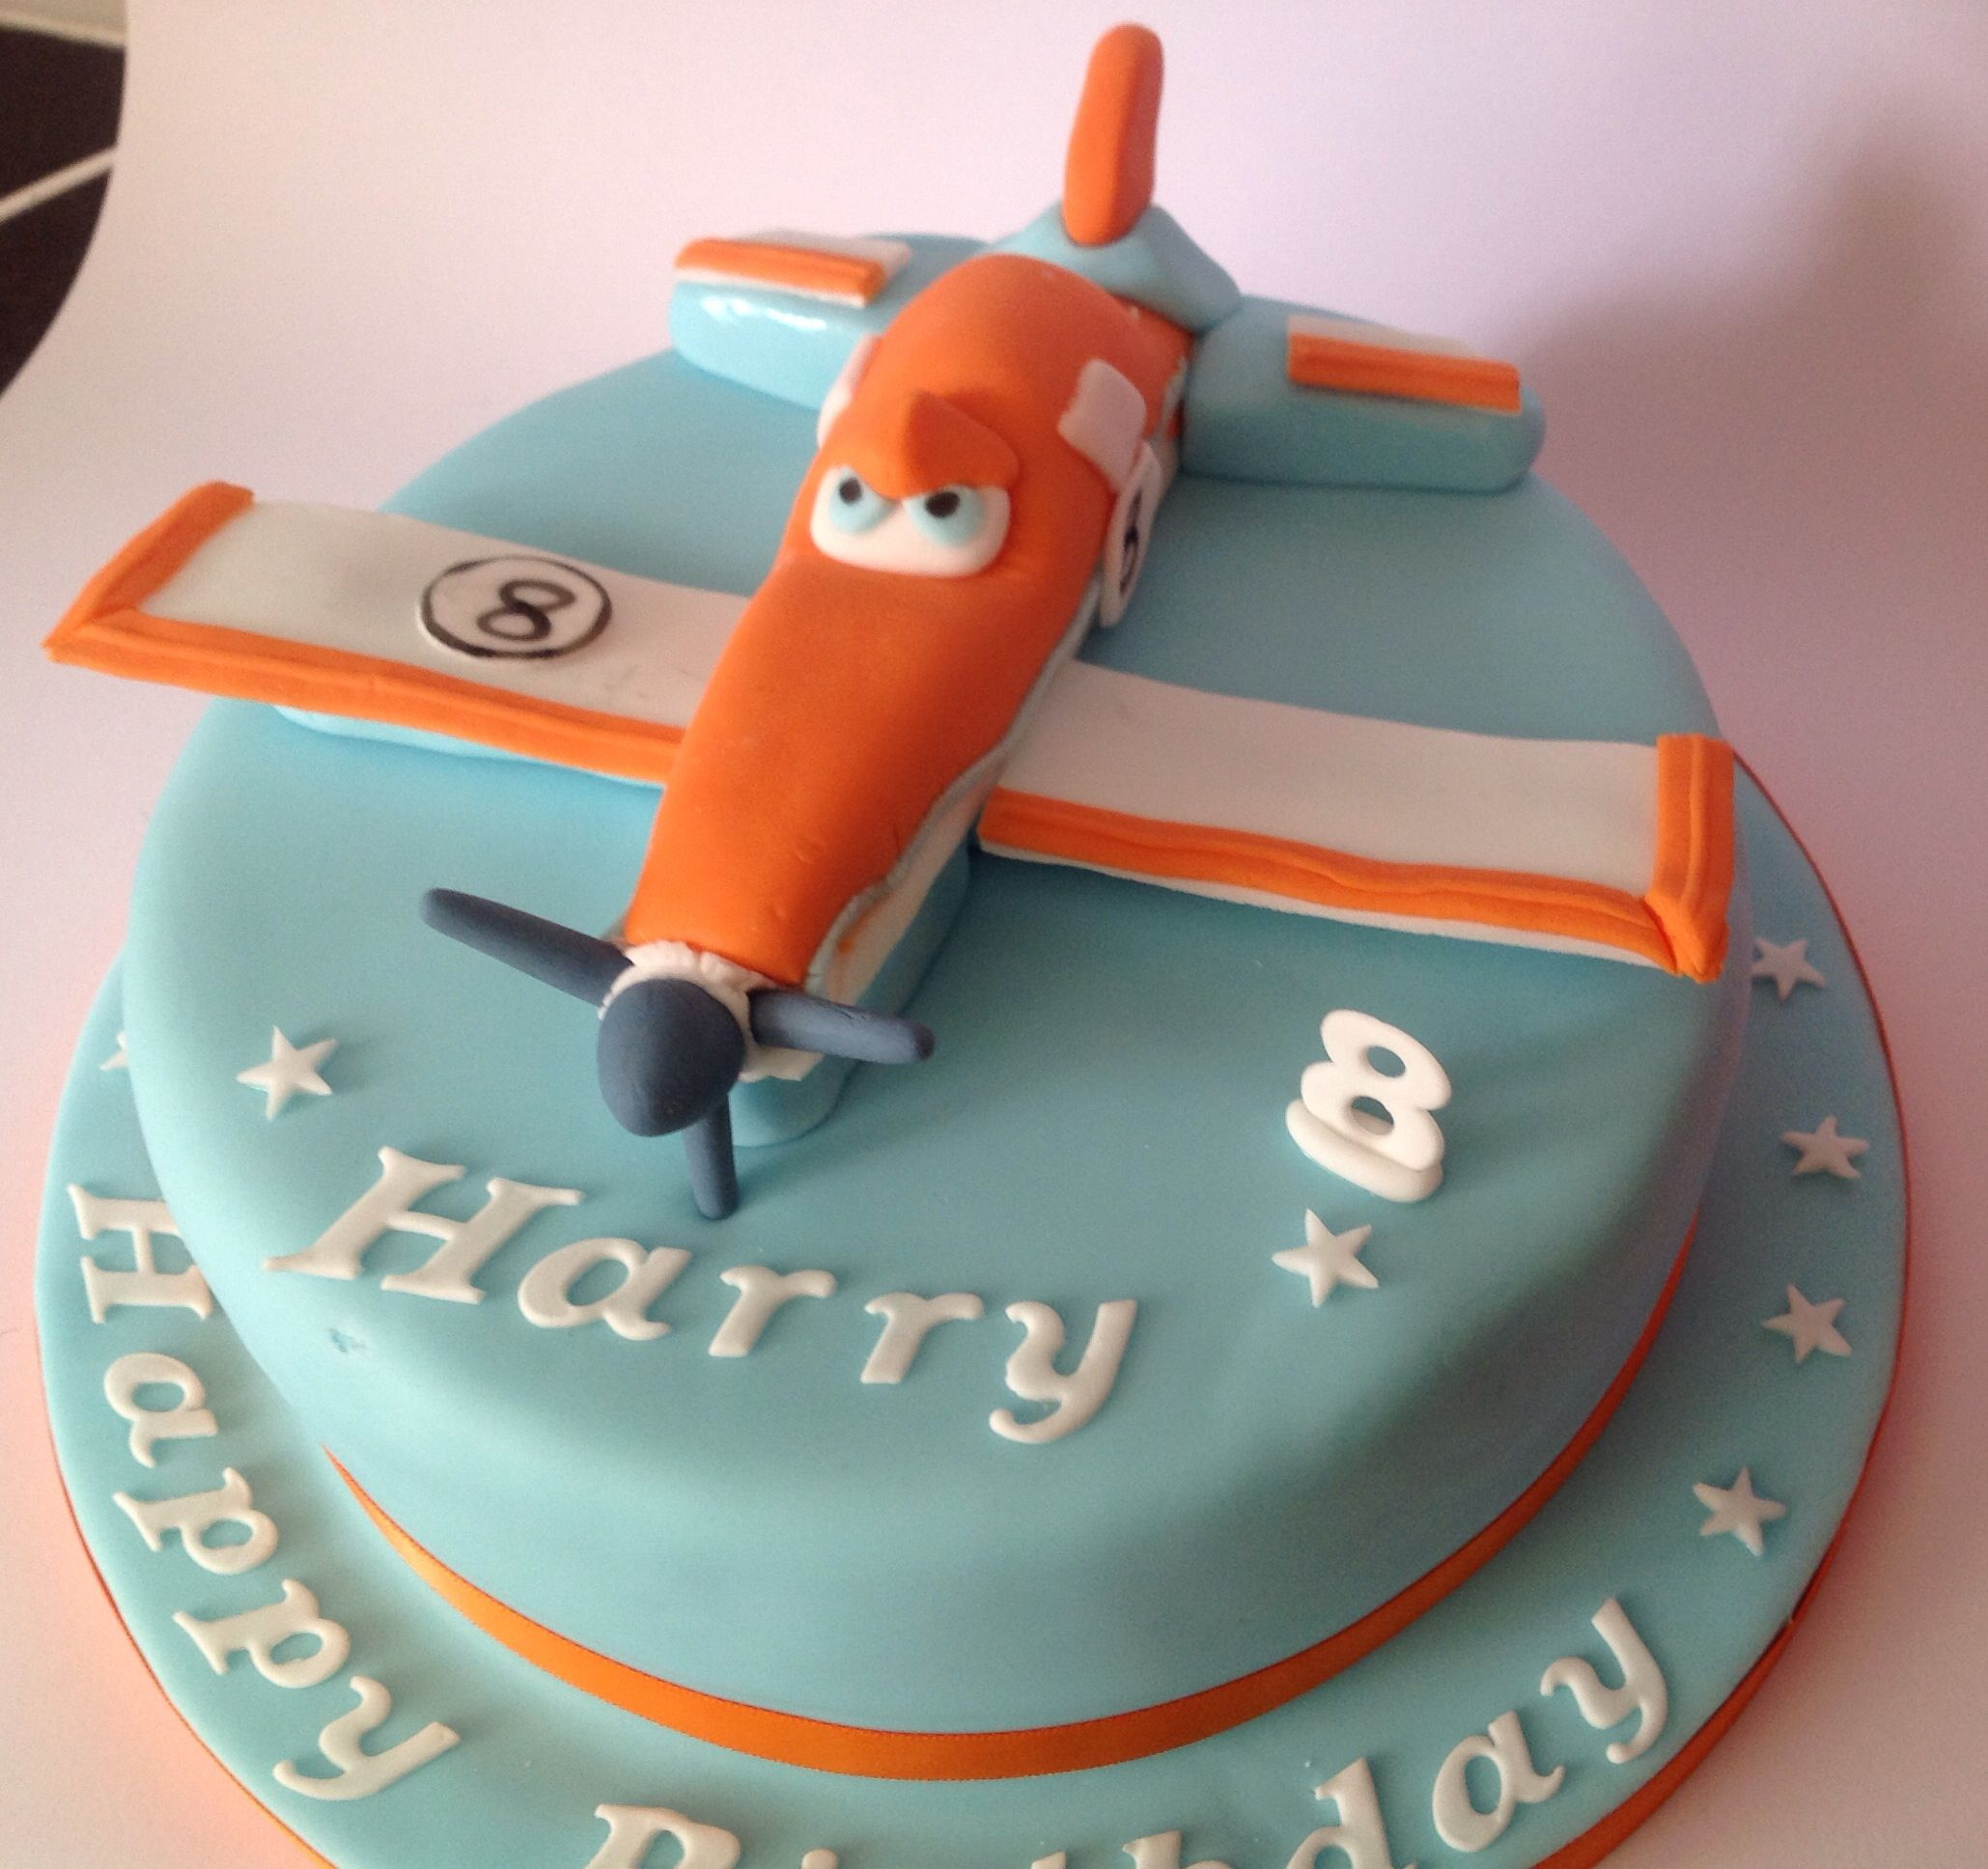 Dusty Crophopper Planes Birthday Cake More Designs At Facebook